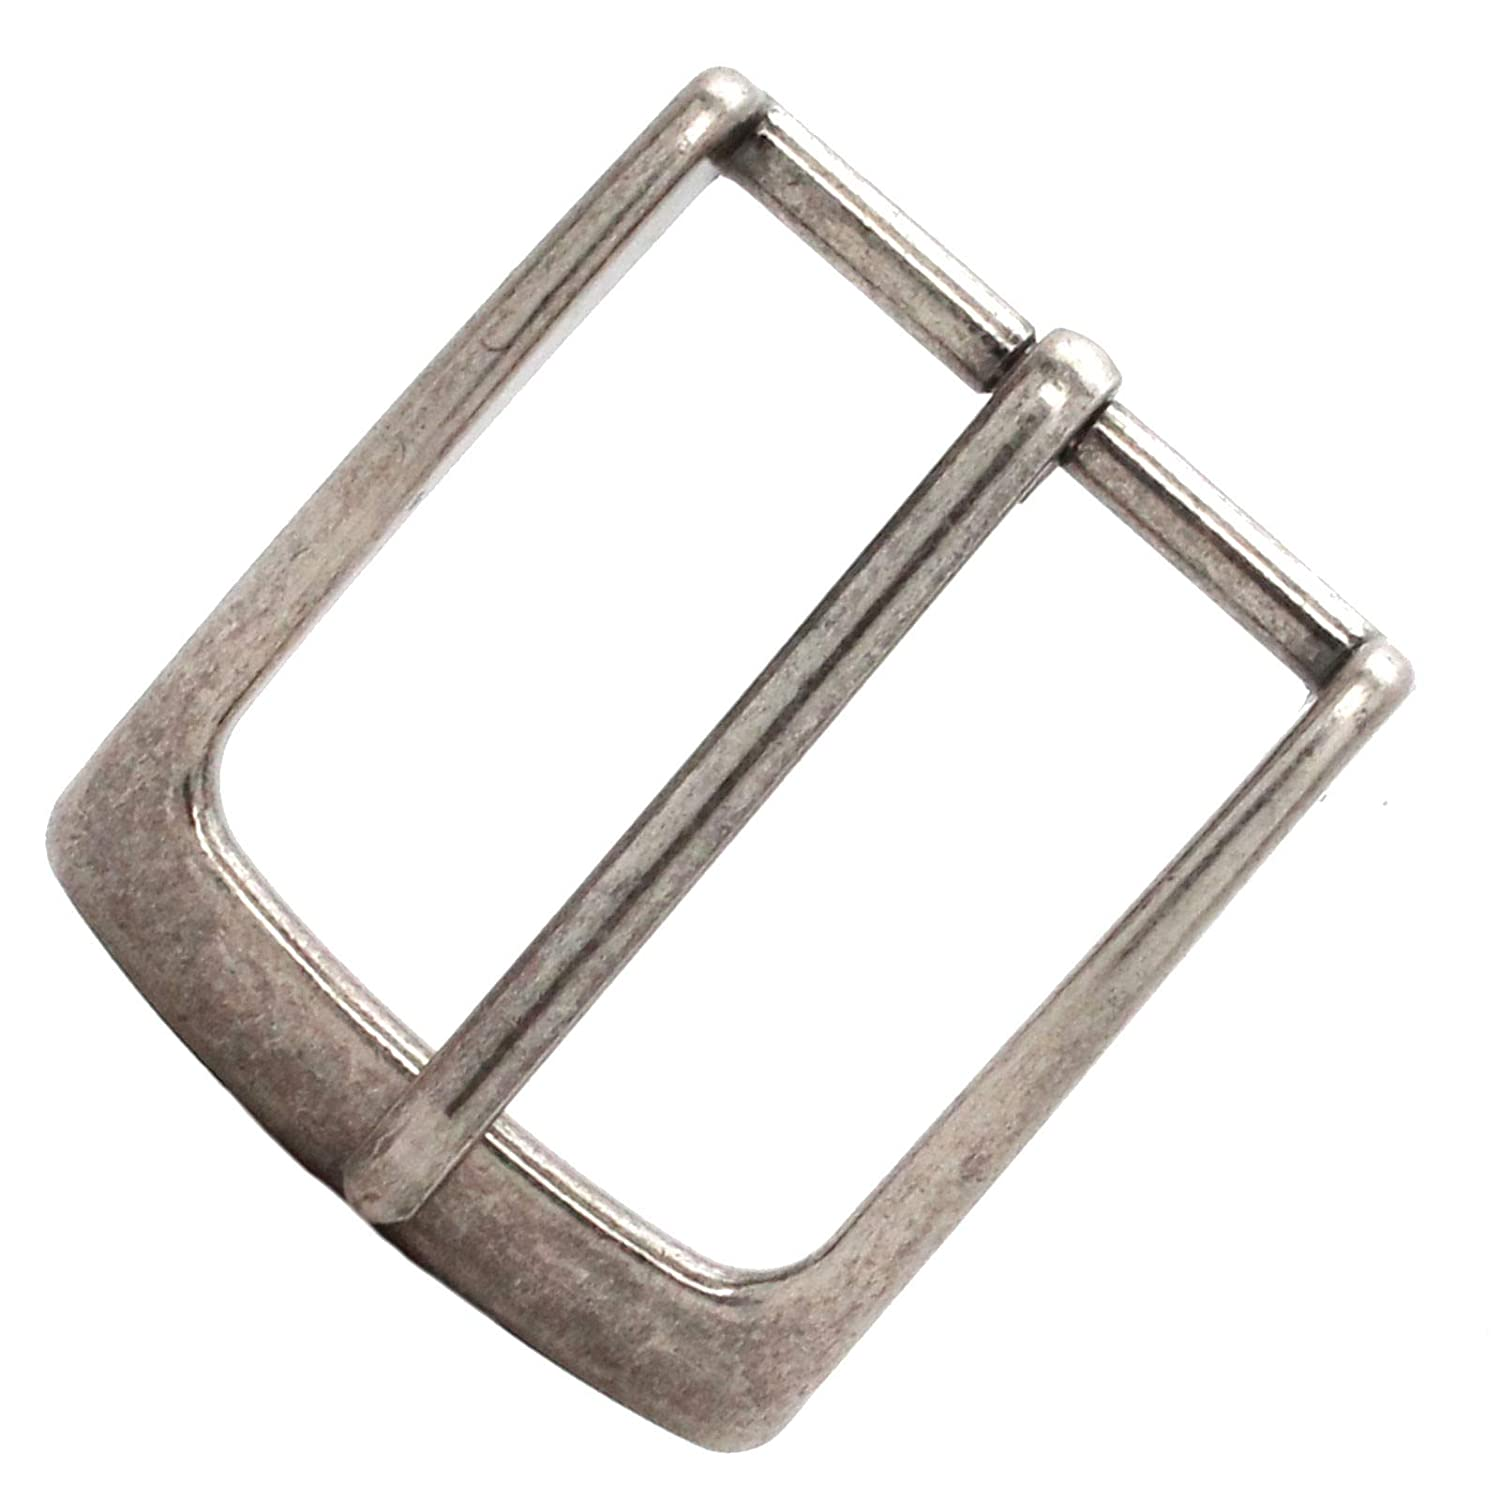 Eyeglass Retainers /& More by Specialist ID Small 1 Inch Bulldog Clasp Clips for Making Lanyards Arts /& Crafts 10 Pack Alligator Style Metal ID Clip Findings DIY Supplies for ID Badges